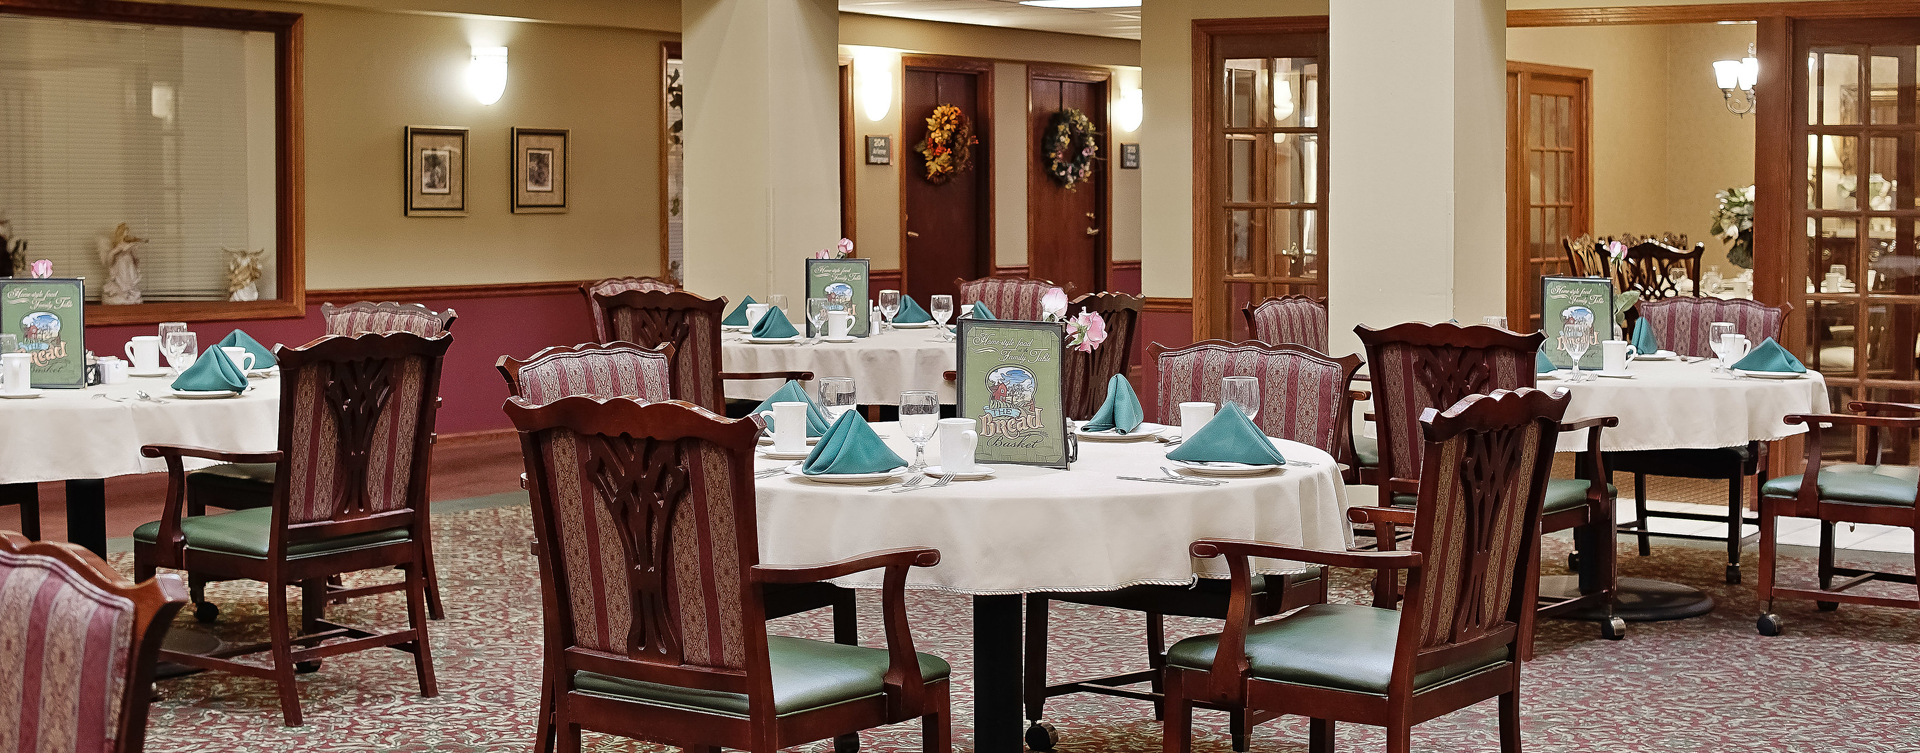 Enjoy restaurant -style meals served three times a day in our dining room at Bickford of Raytown